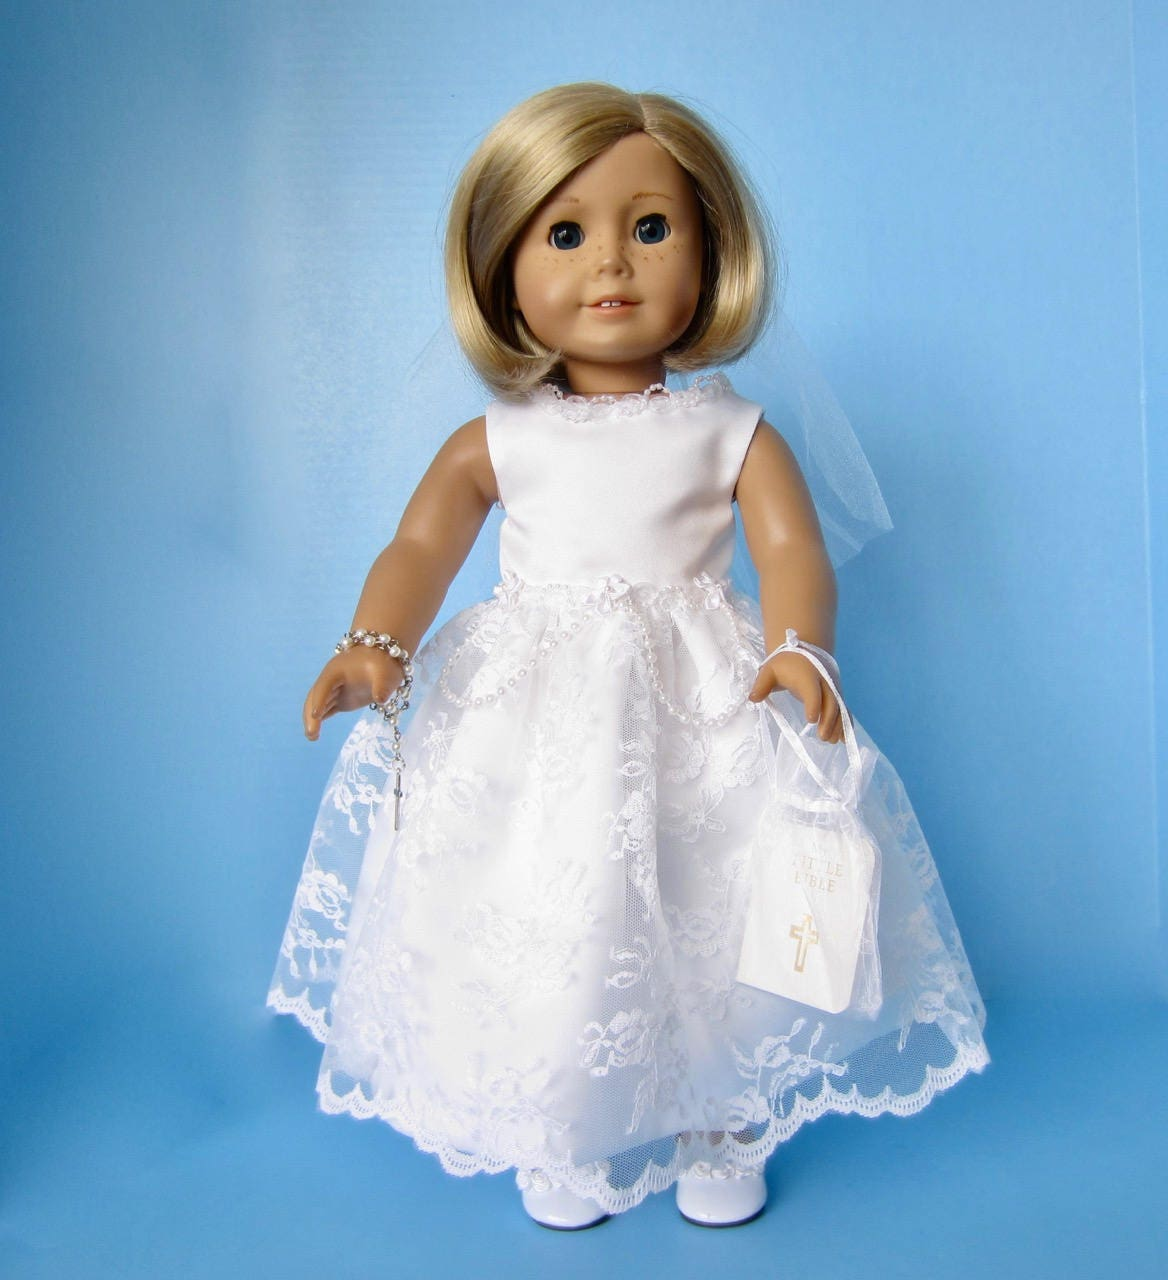 American Girl Doll: First Communion in Lace and Pearls